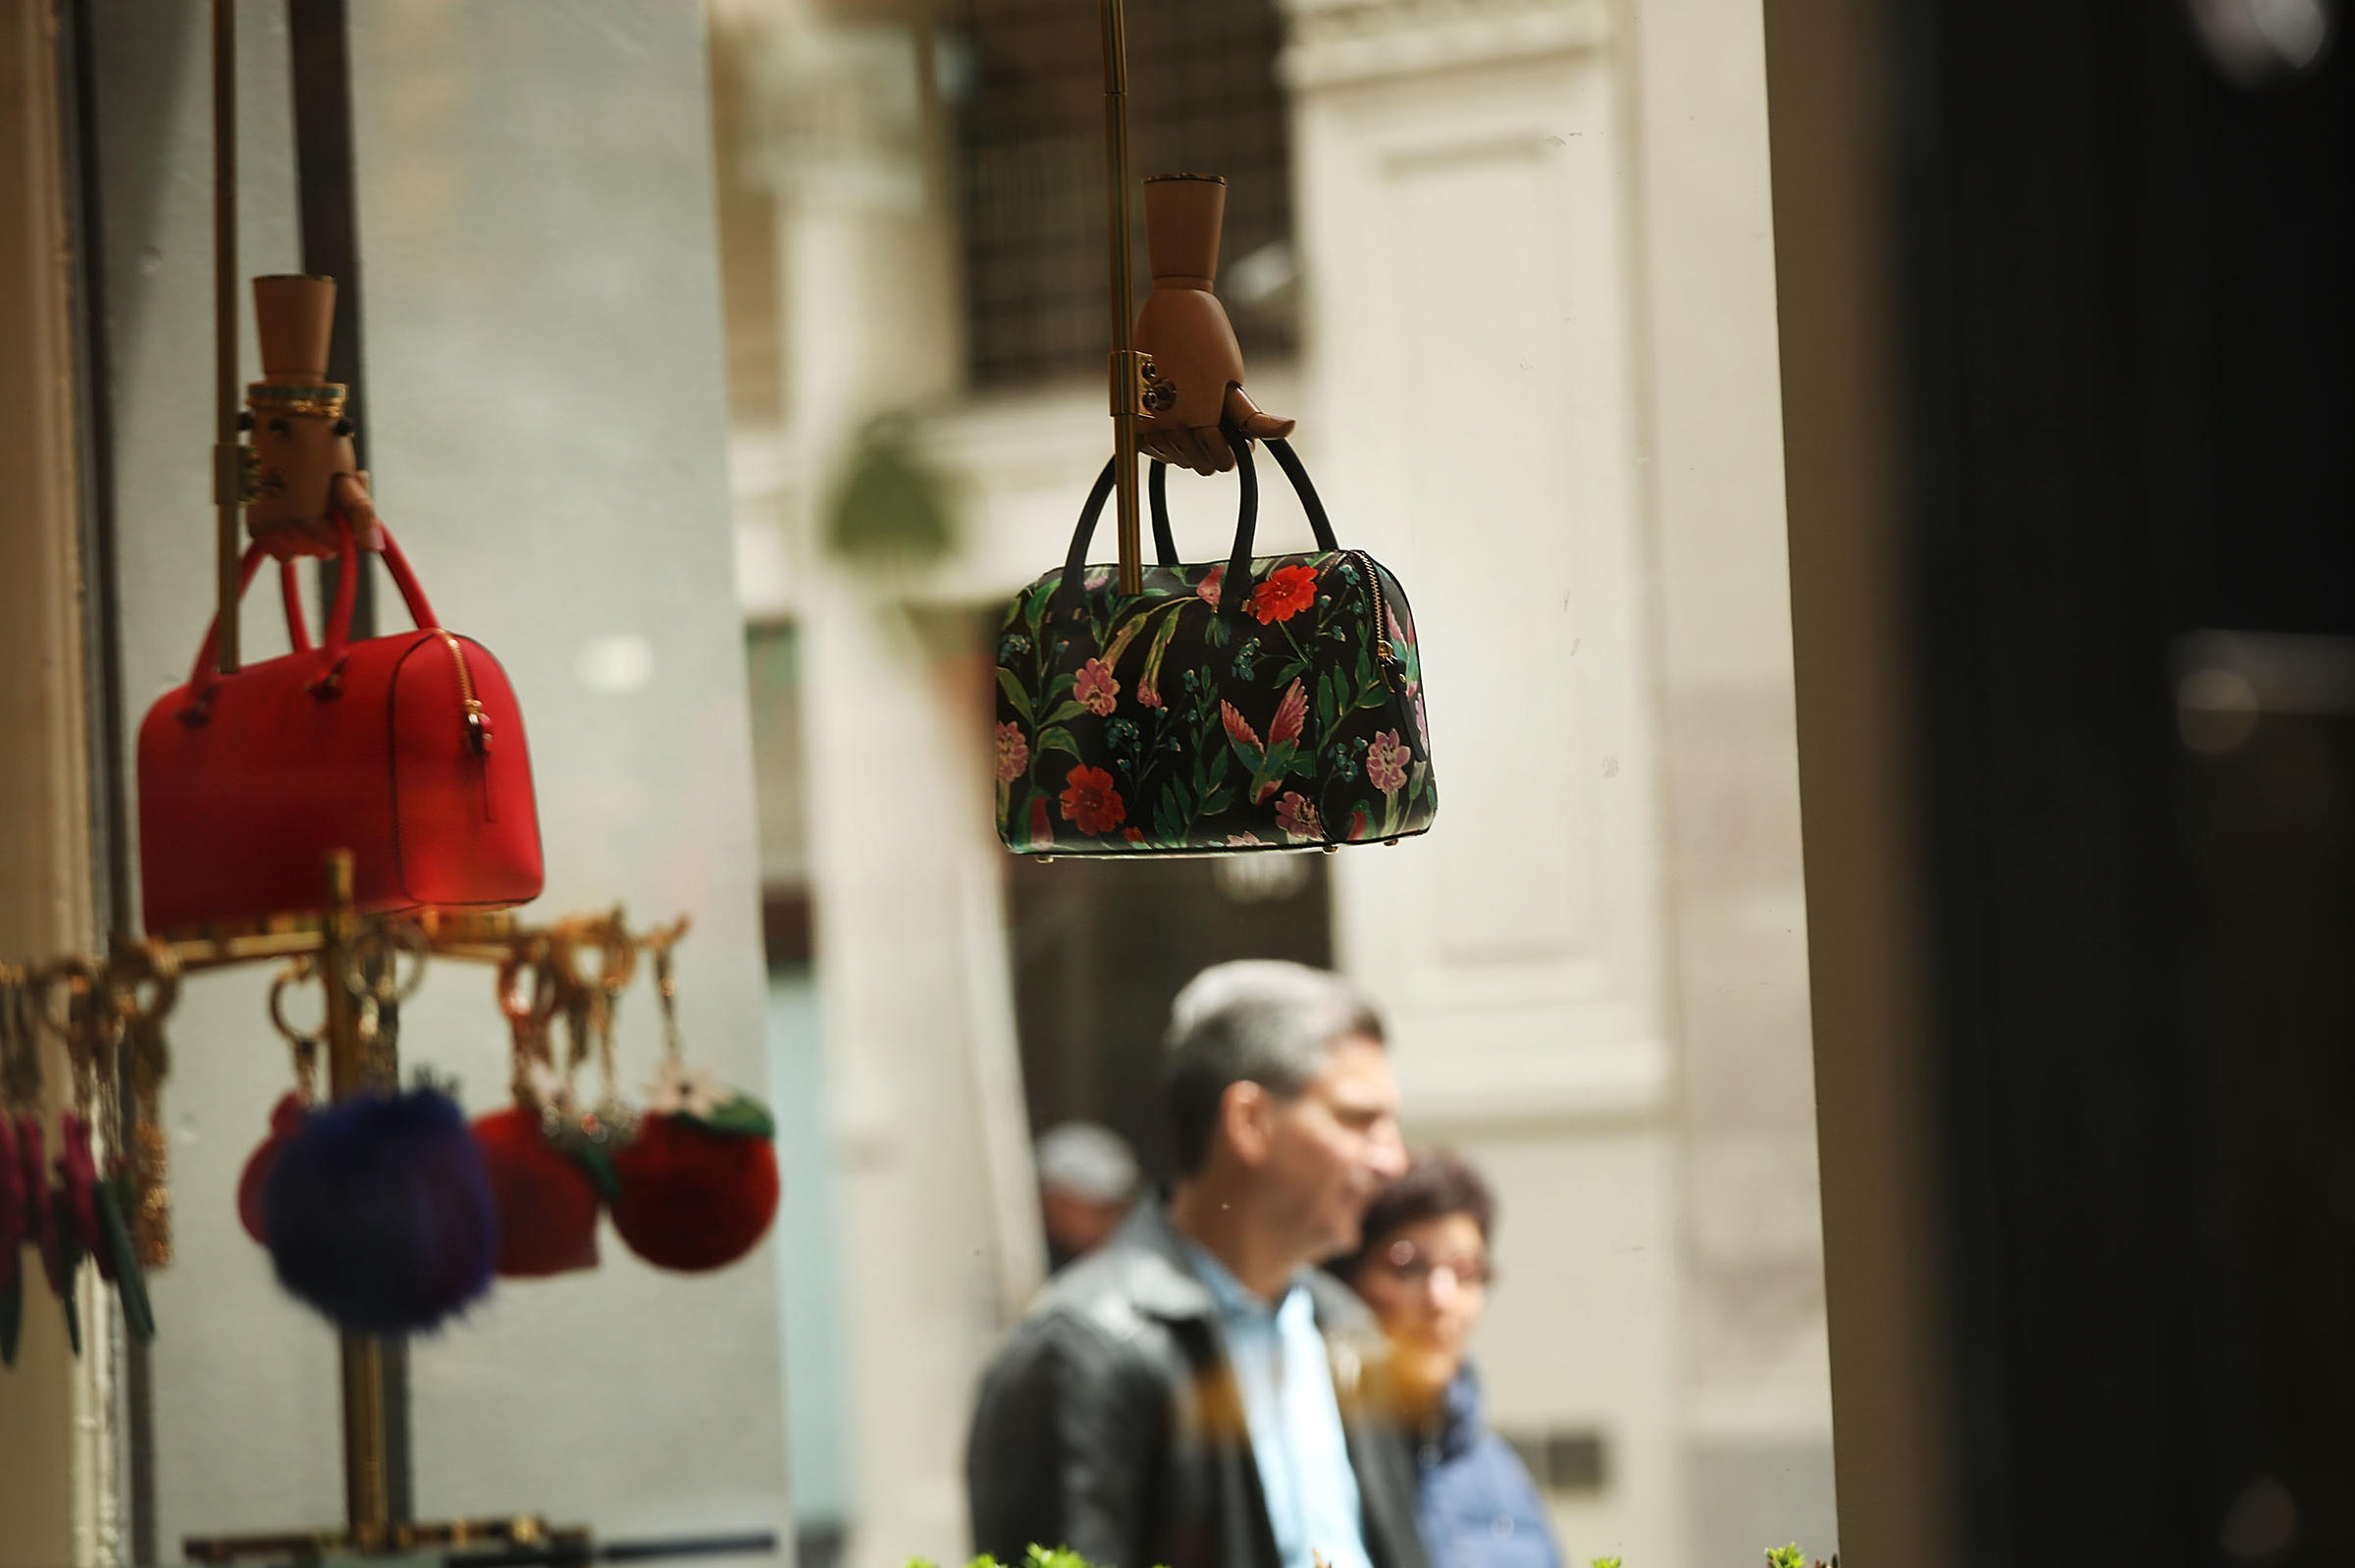 With eye on millennials, Coach buys Kate Spade for $2.4 billion